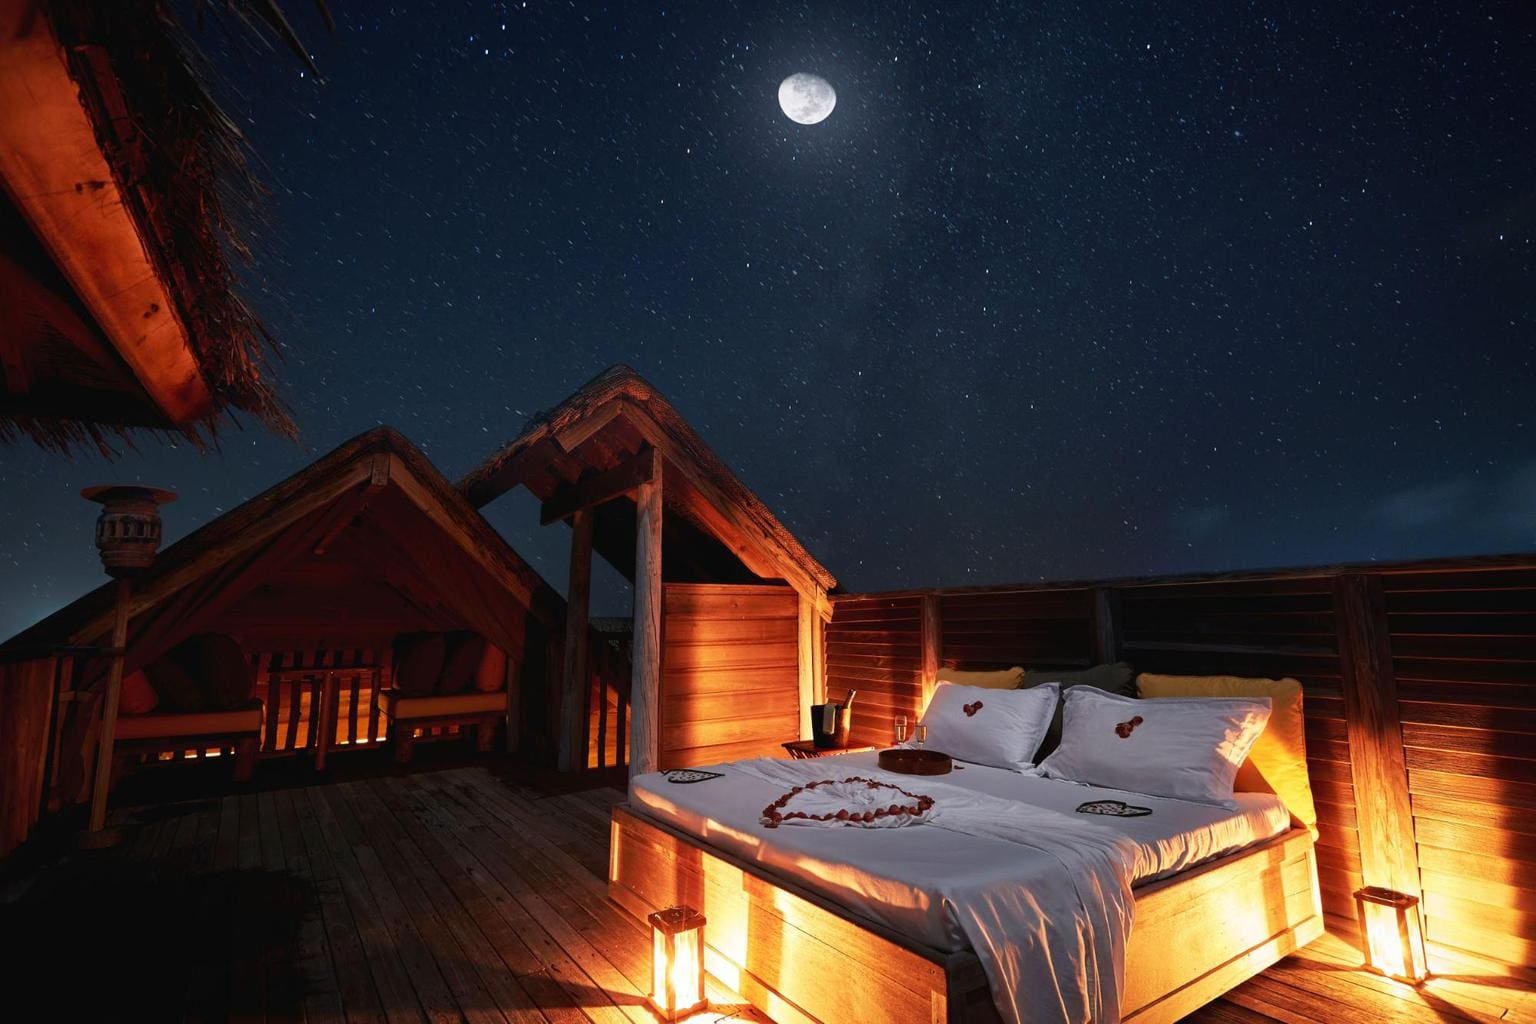 Sleeping under the stars at Gili Lankanfushi